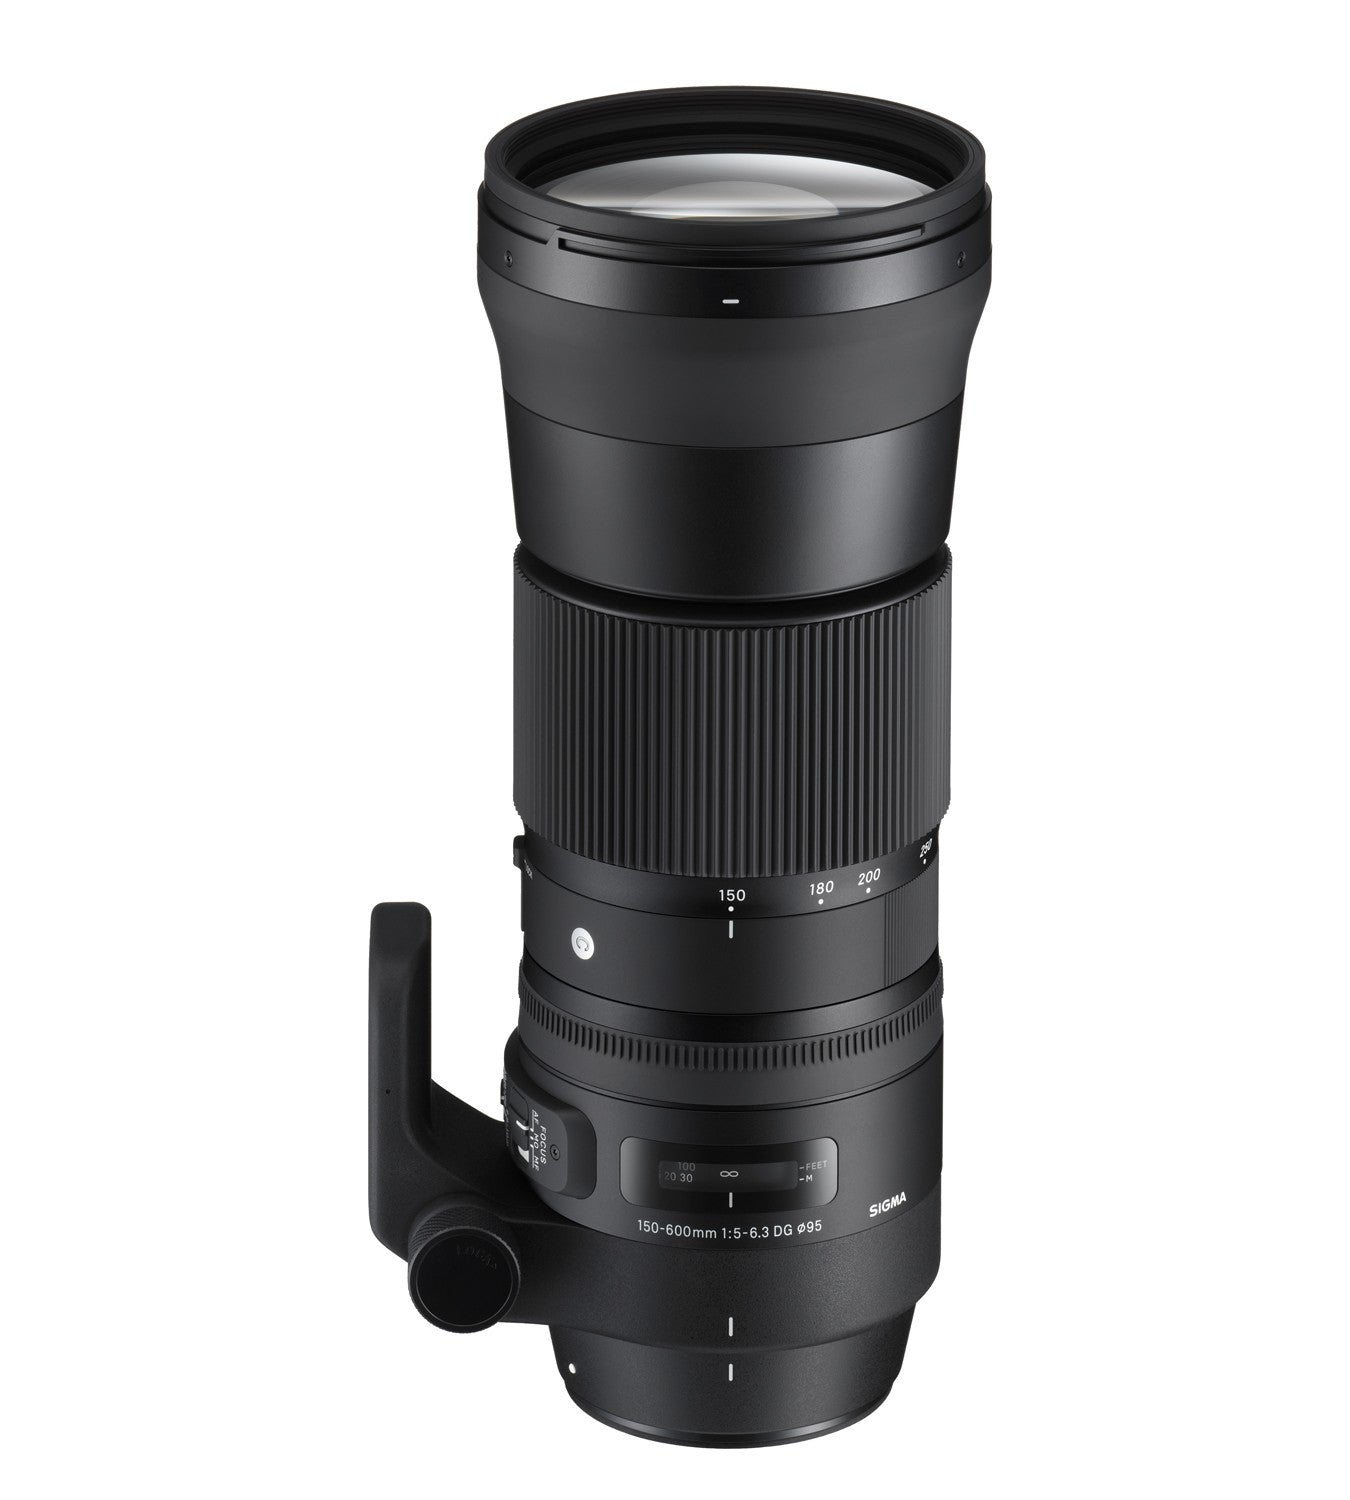 Sigma 150-600mm F5-6.3 CONTEMPORARY DG OS HSM (Nikon) - Photo-Video - Sigma - Helix Camera